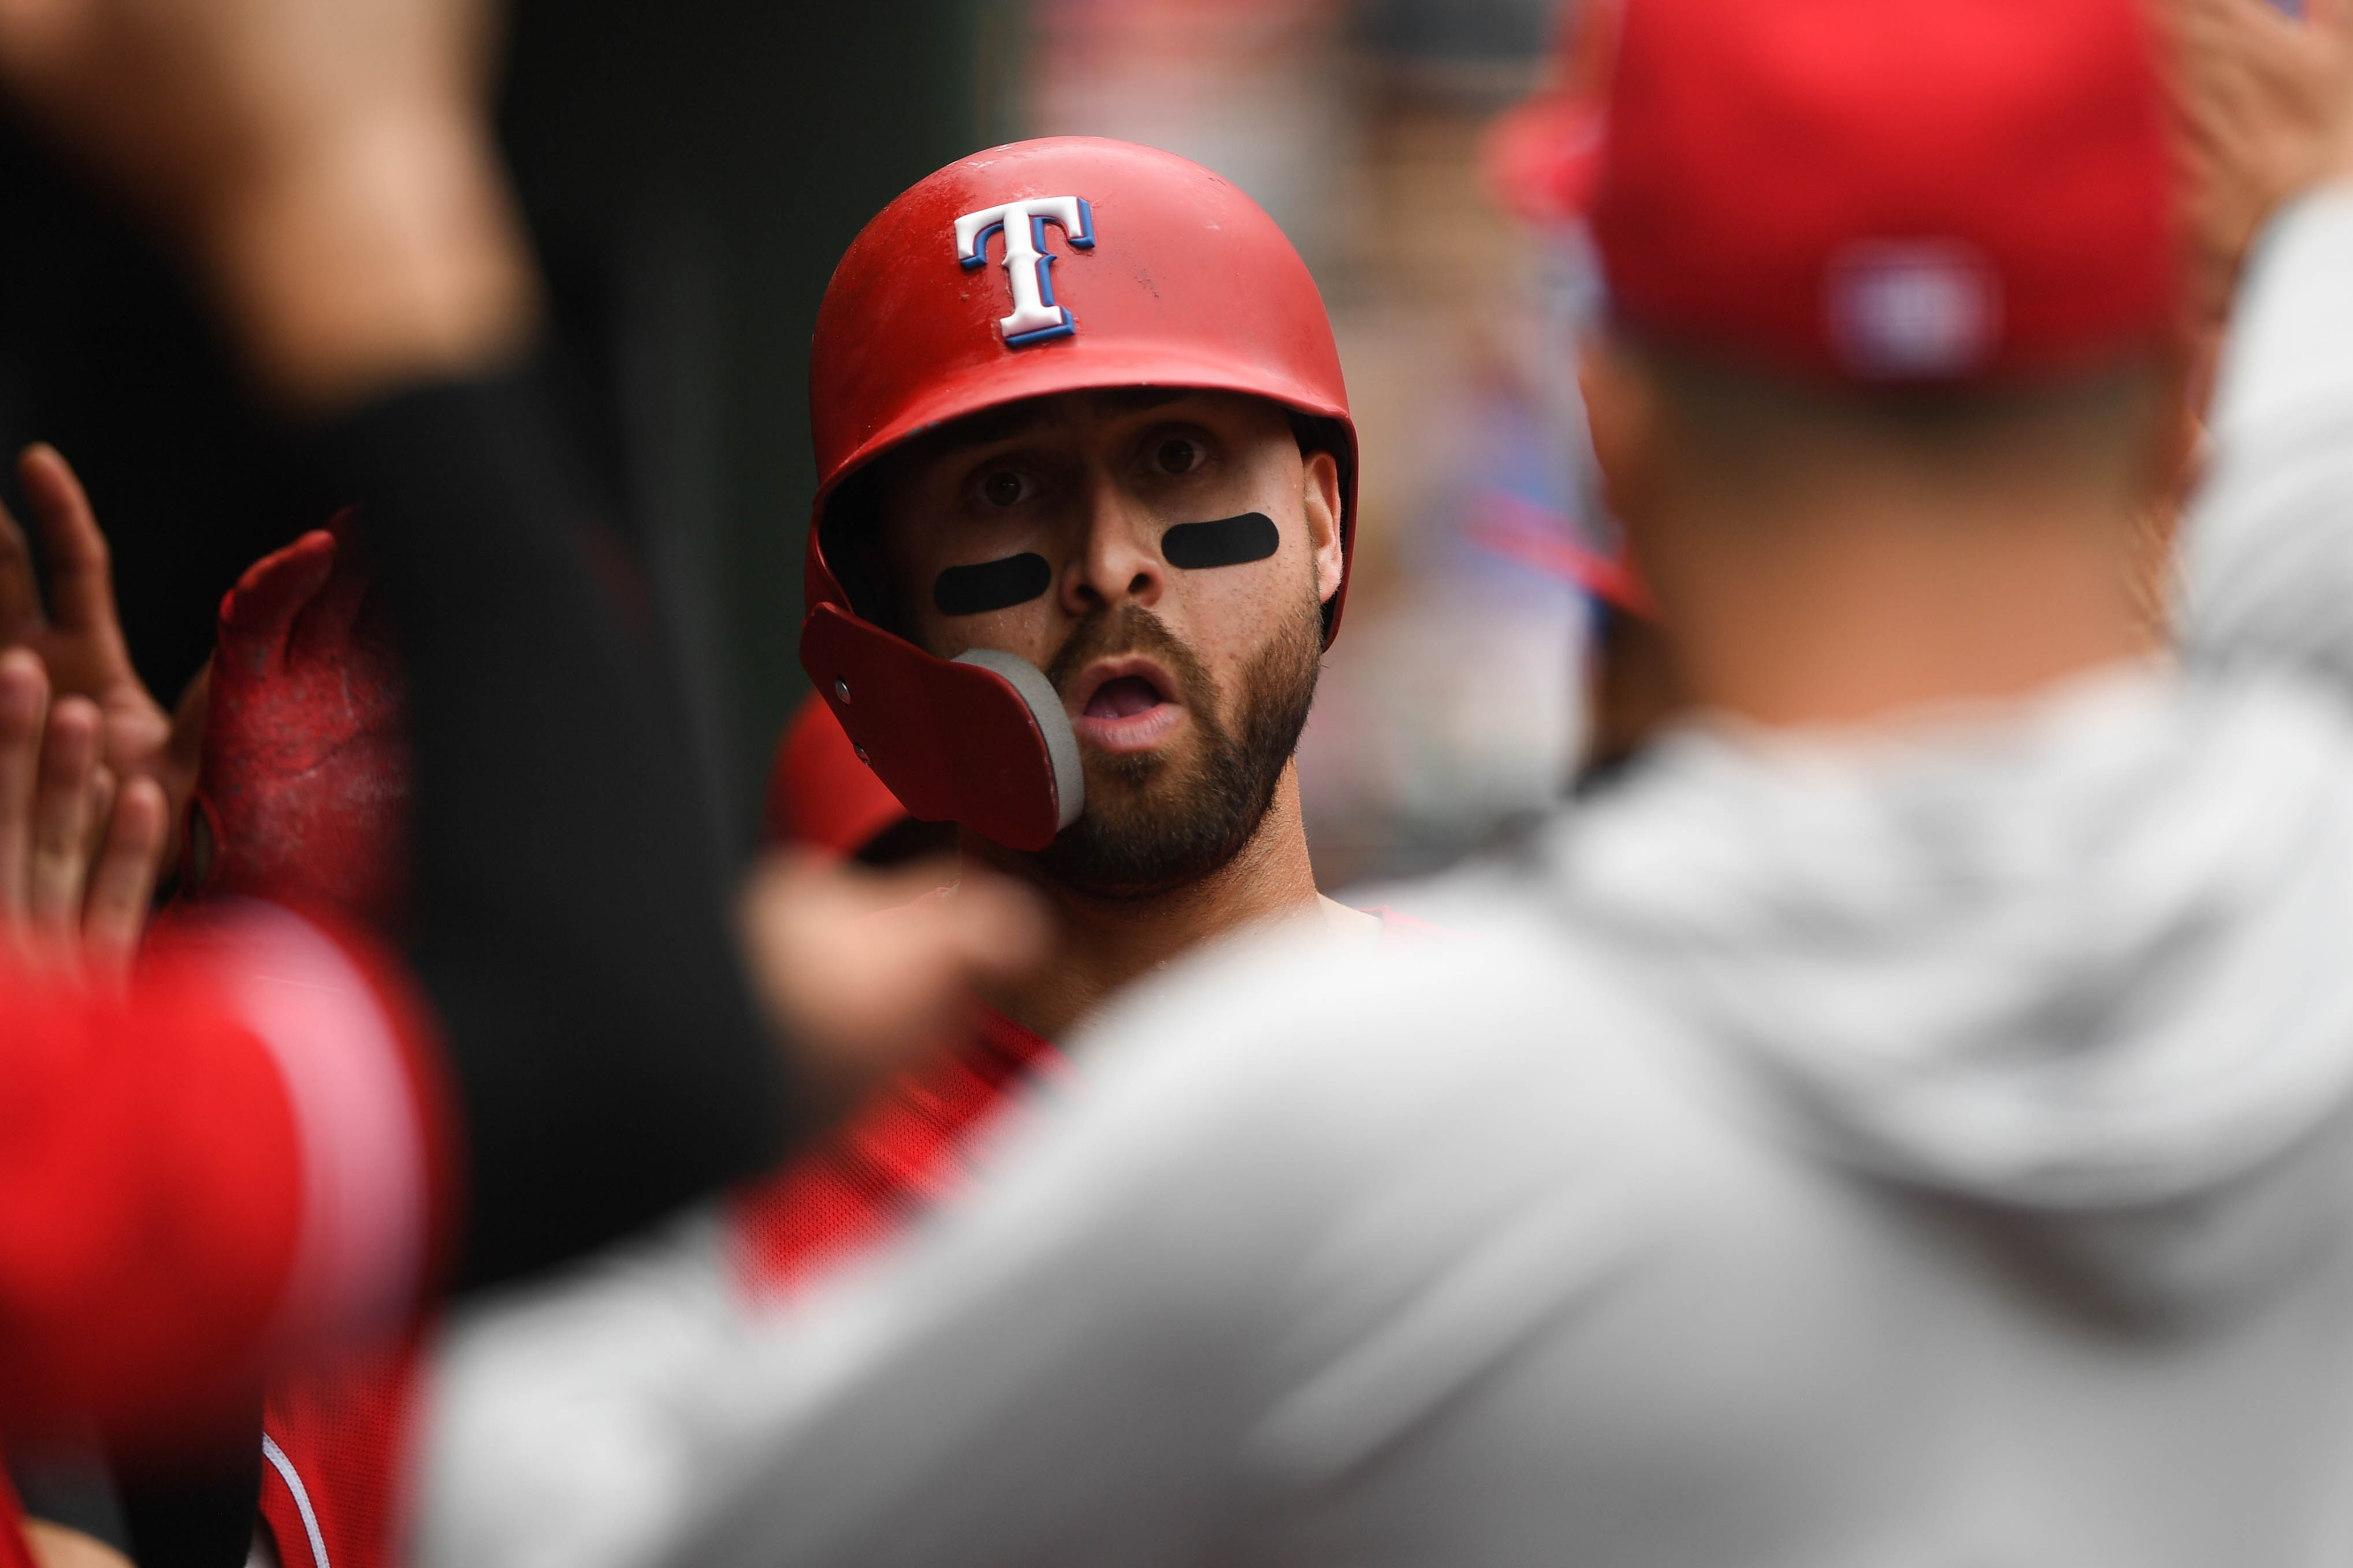 Aug 8, 2018; Arlington, TX, USA; Texas Rangers third baseman Joey Gallo (13) celebrates his home run with teammates in the dugout during the third inning against the Seattle Mariners at Globe Life Park in Arlington. Mandatory Credit: Shanna Lockwood-USA TODAY Sports